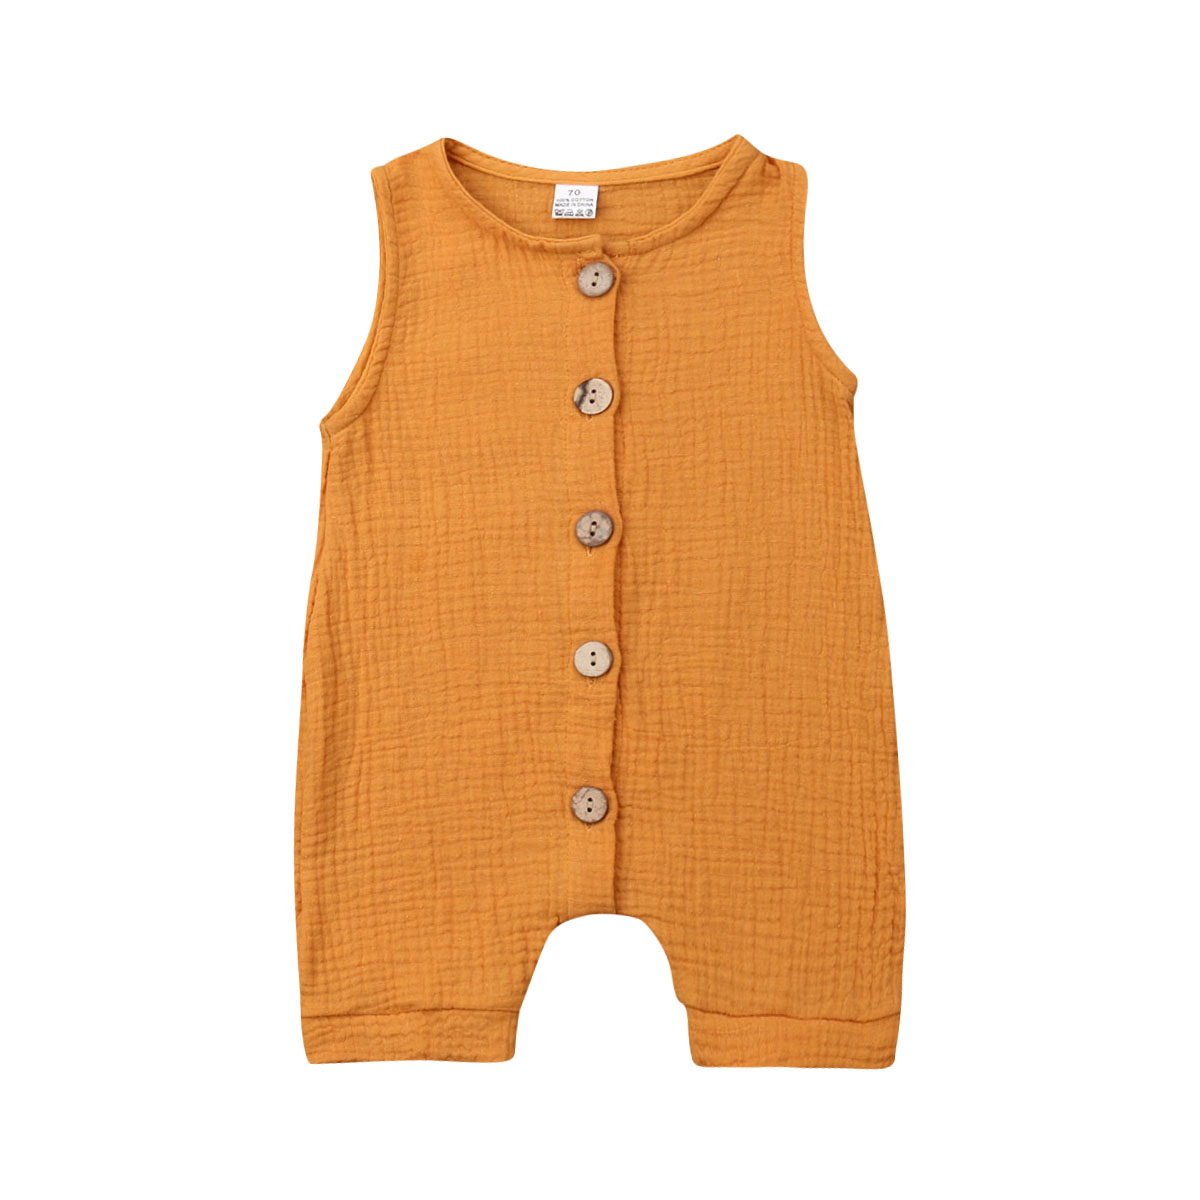 0 3 Months Infant Baby Boy Girl Romper Sleeveless Button Solid Color Linen Jumpsuit Unisex Baby Playsuit Casual Summer Clothes in Rompers from Mother Kids